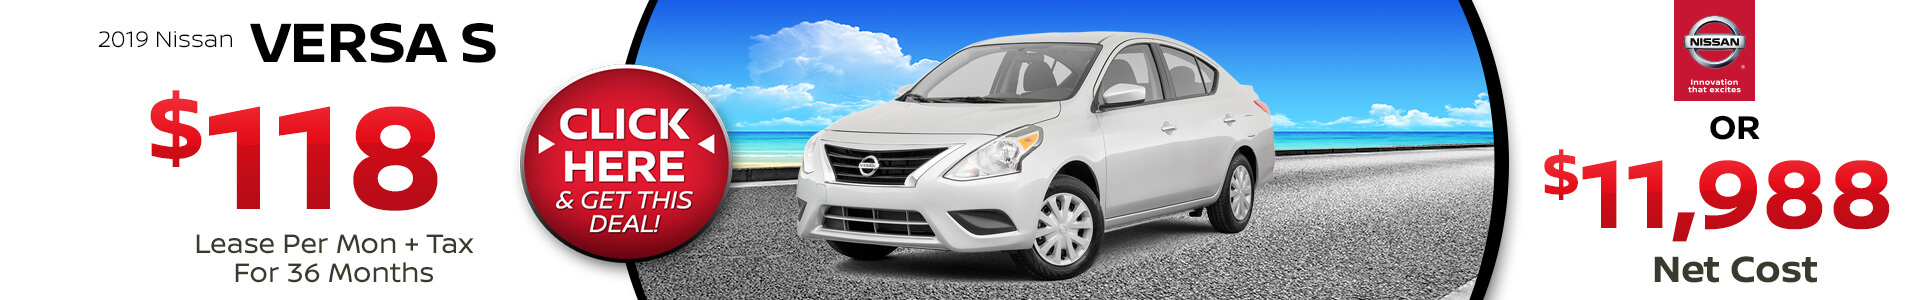 2019 Nissan Versa Lease for $$118